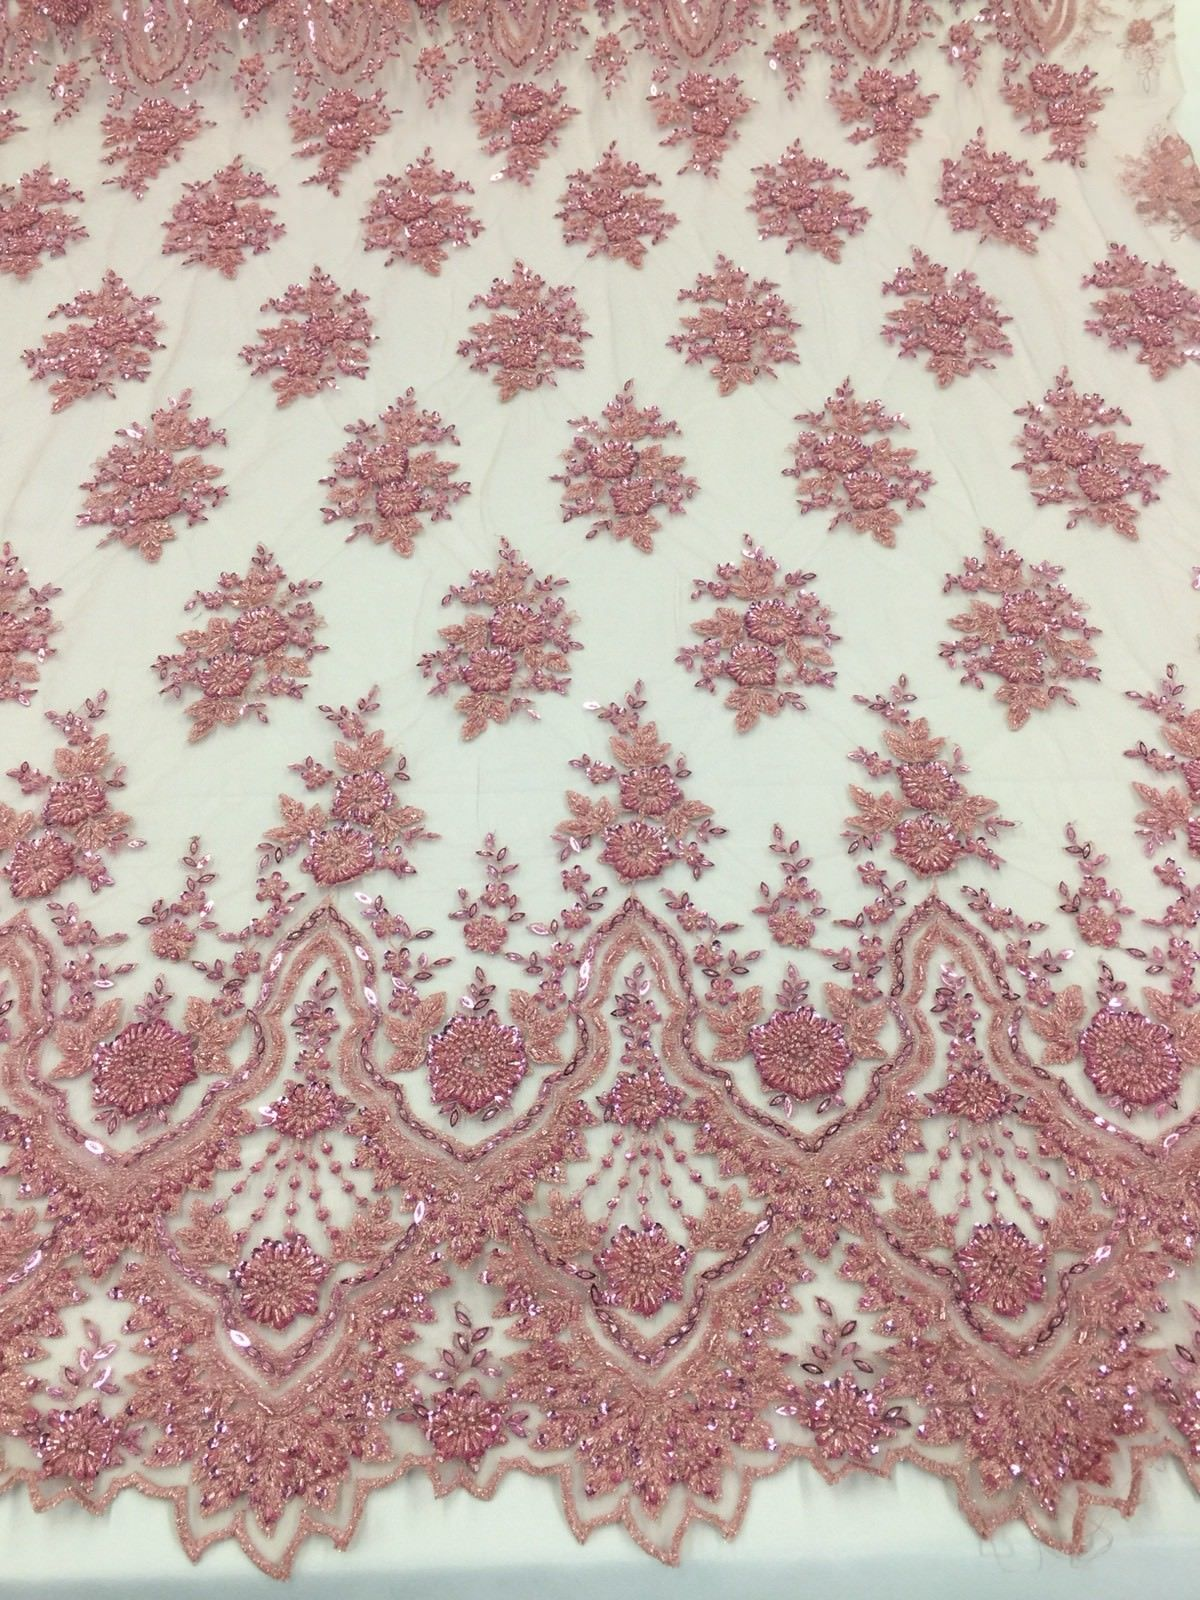 Beaded fabric - Embroidered Mesh Squin Dusty Rose Bridal Veil & Wedding By Yard - KINGDOM OF FABRICS